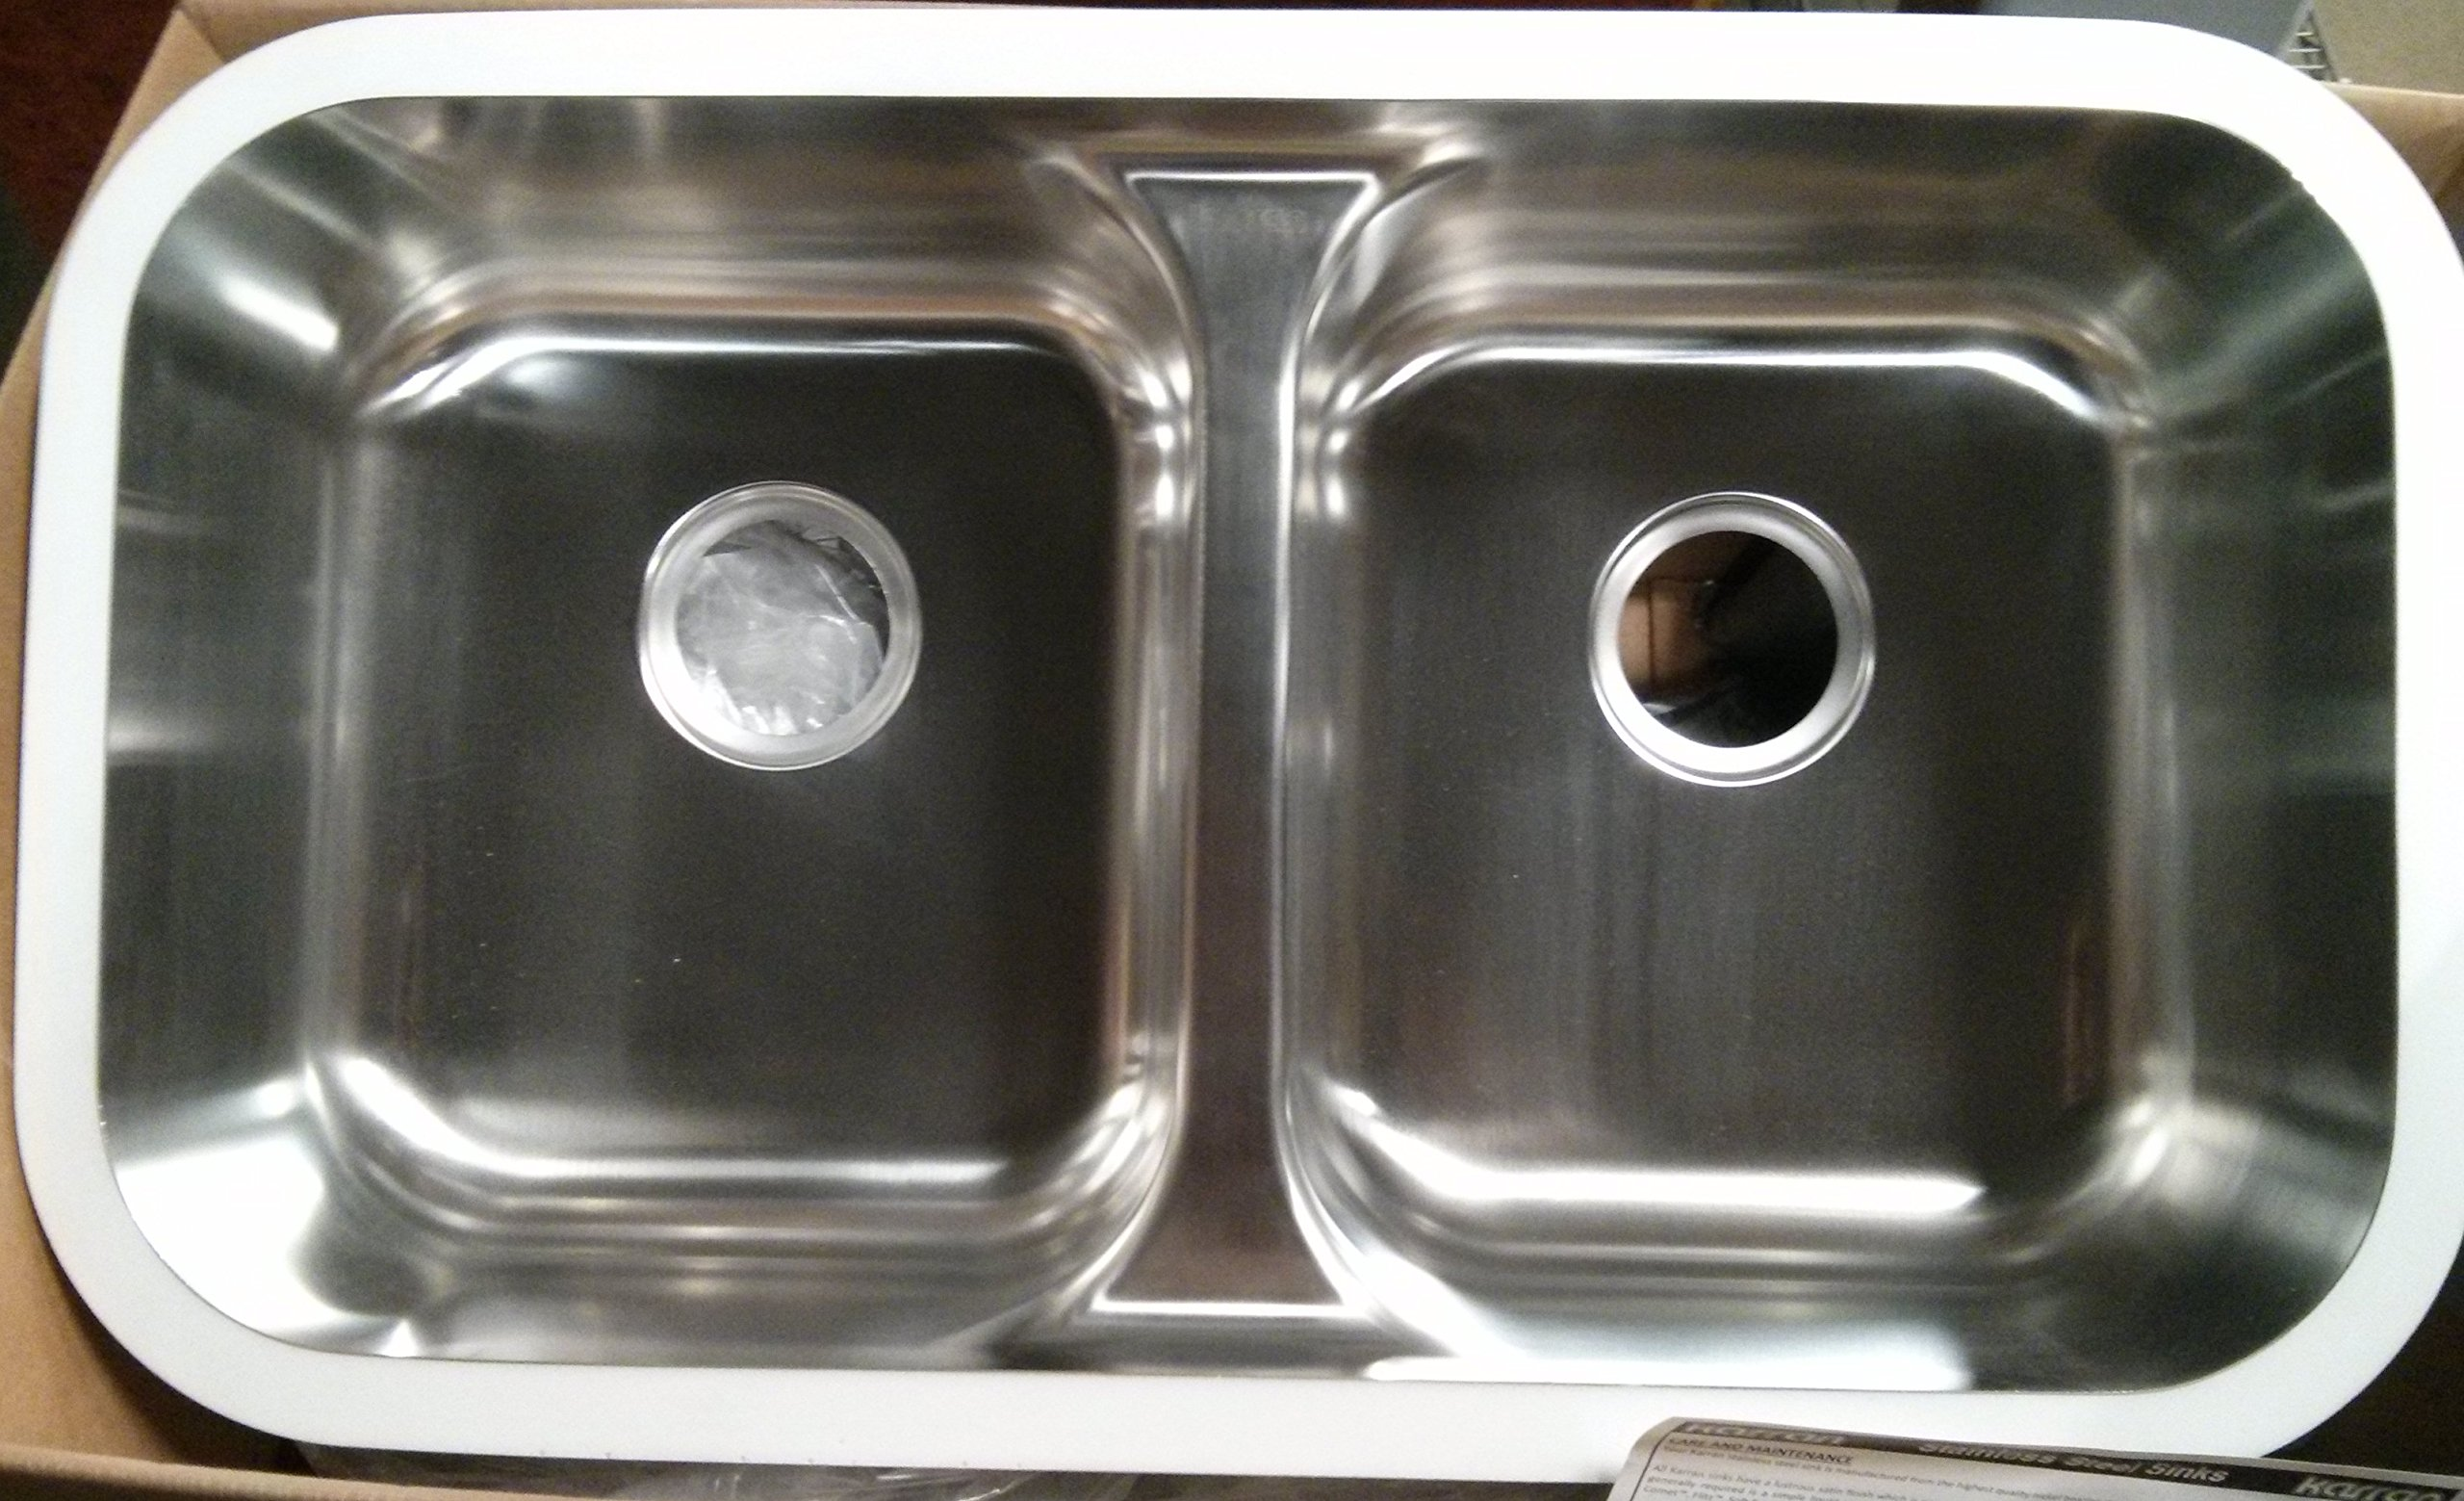 Karran E-350-S Polished Undermount 50/50 Double Bowl 18 gauge Stainless Steel Kitchen Sink